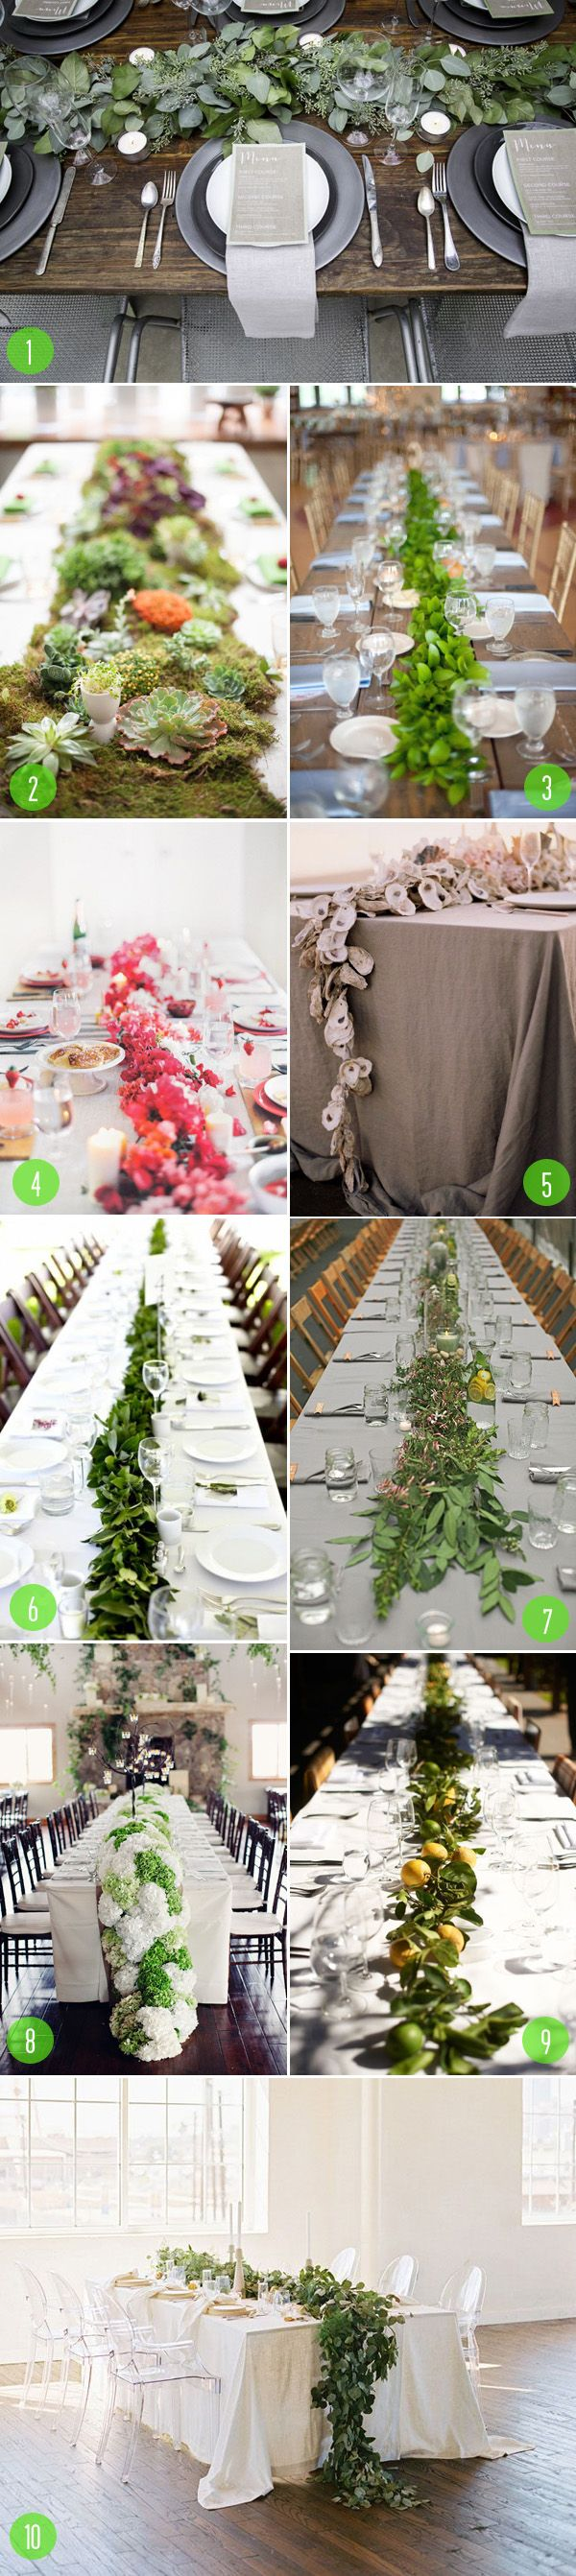 Top 10: Garland centerpieces